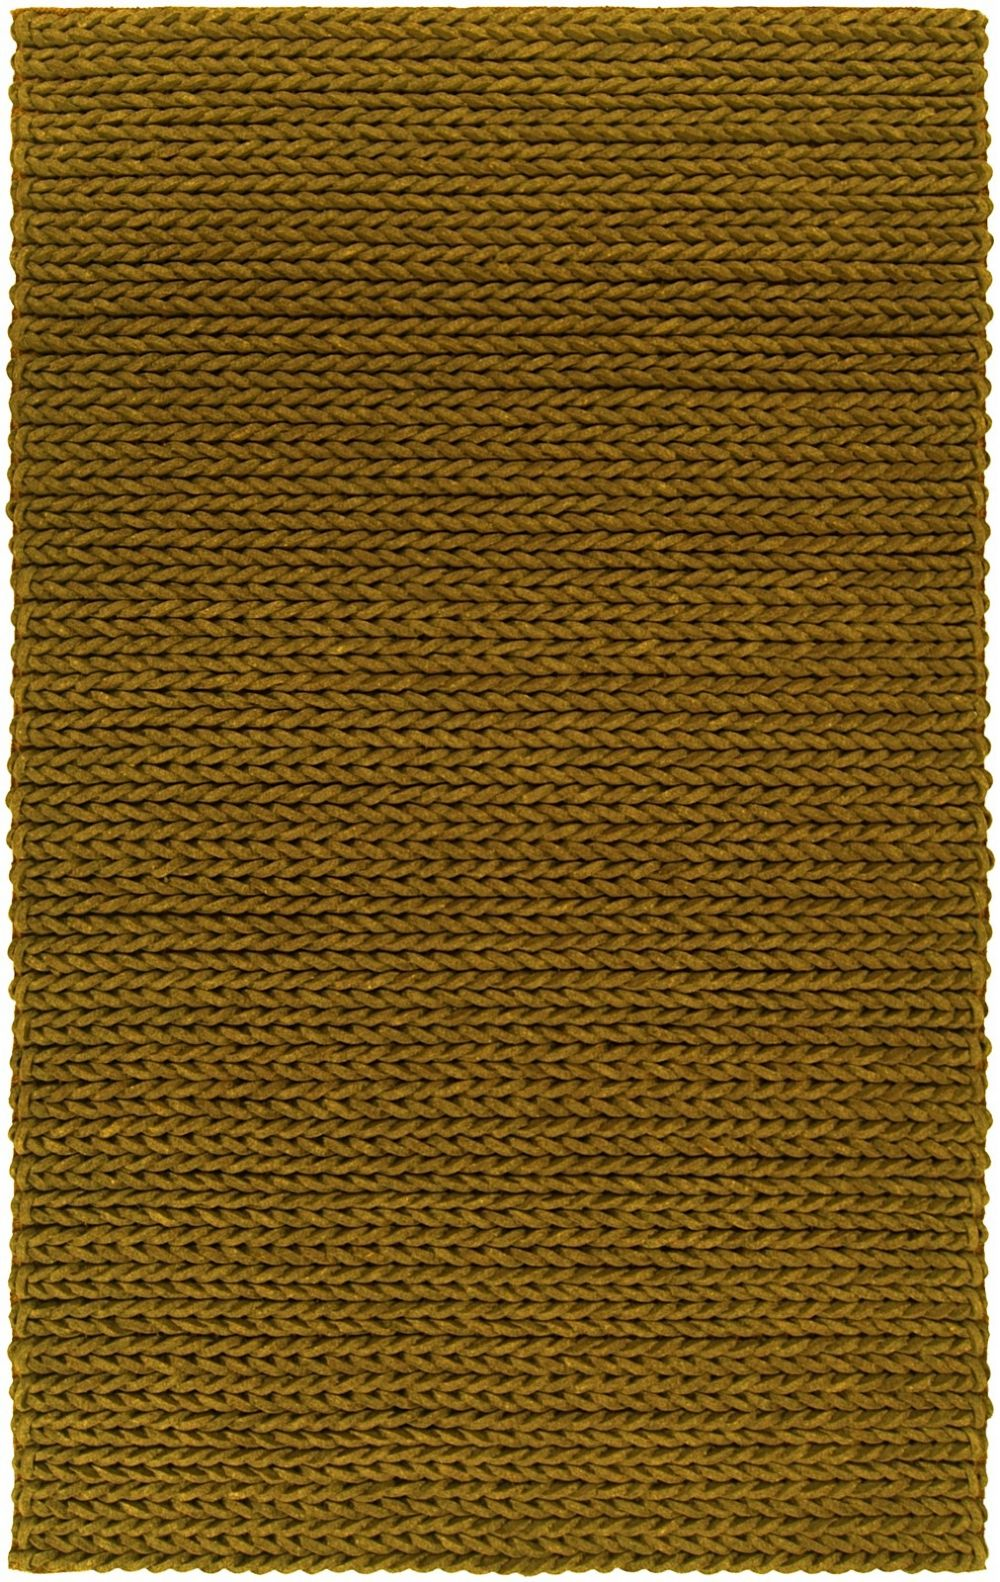 surya anchorage plush area rug collection